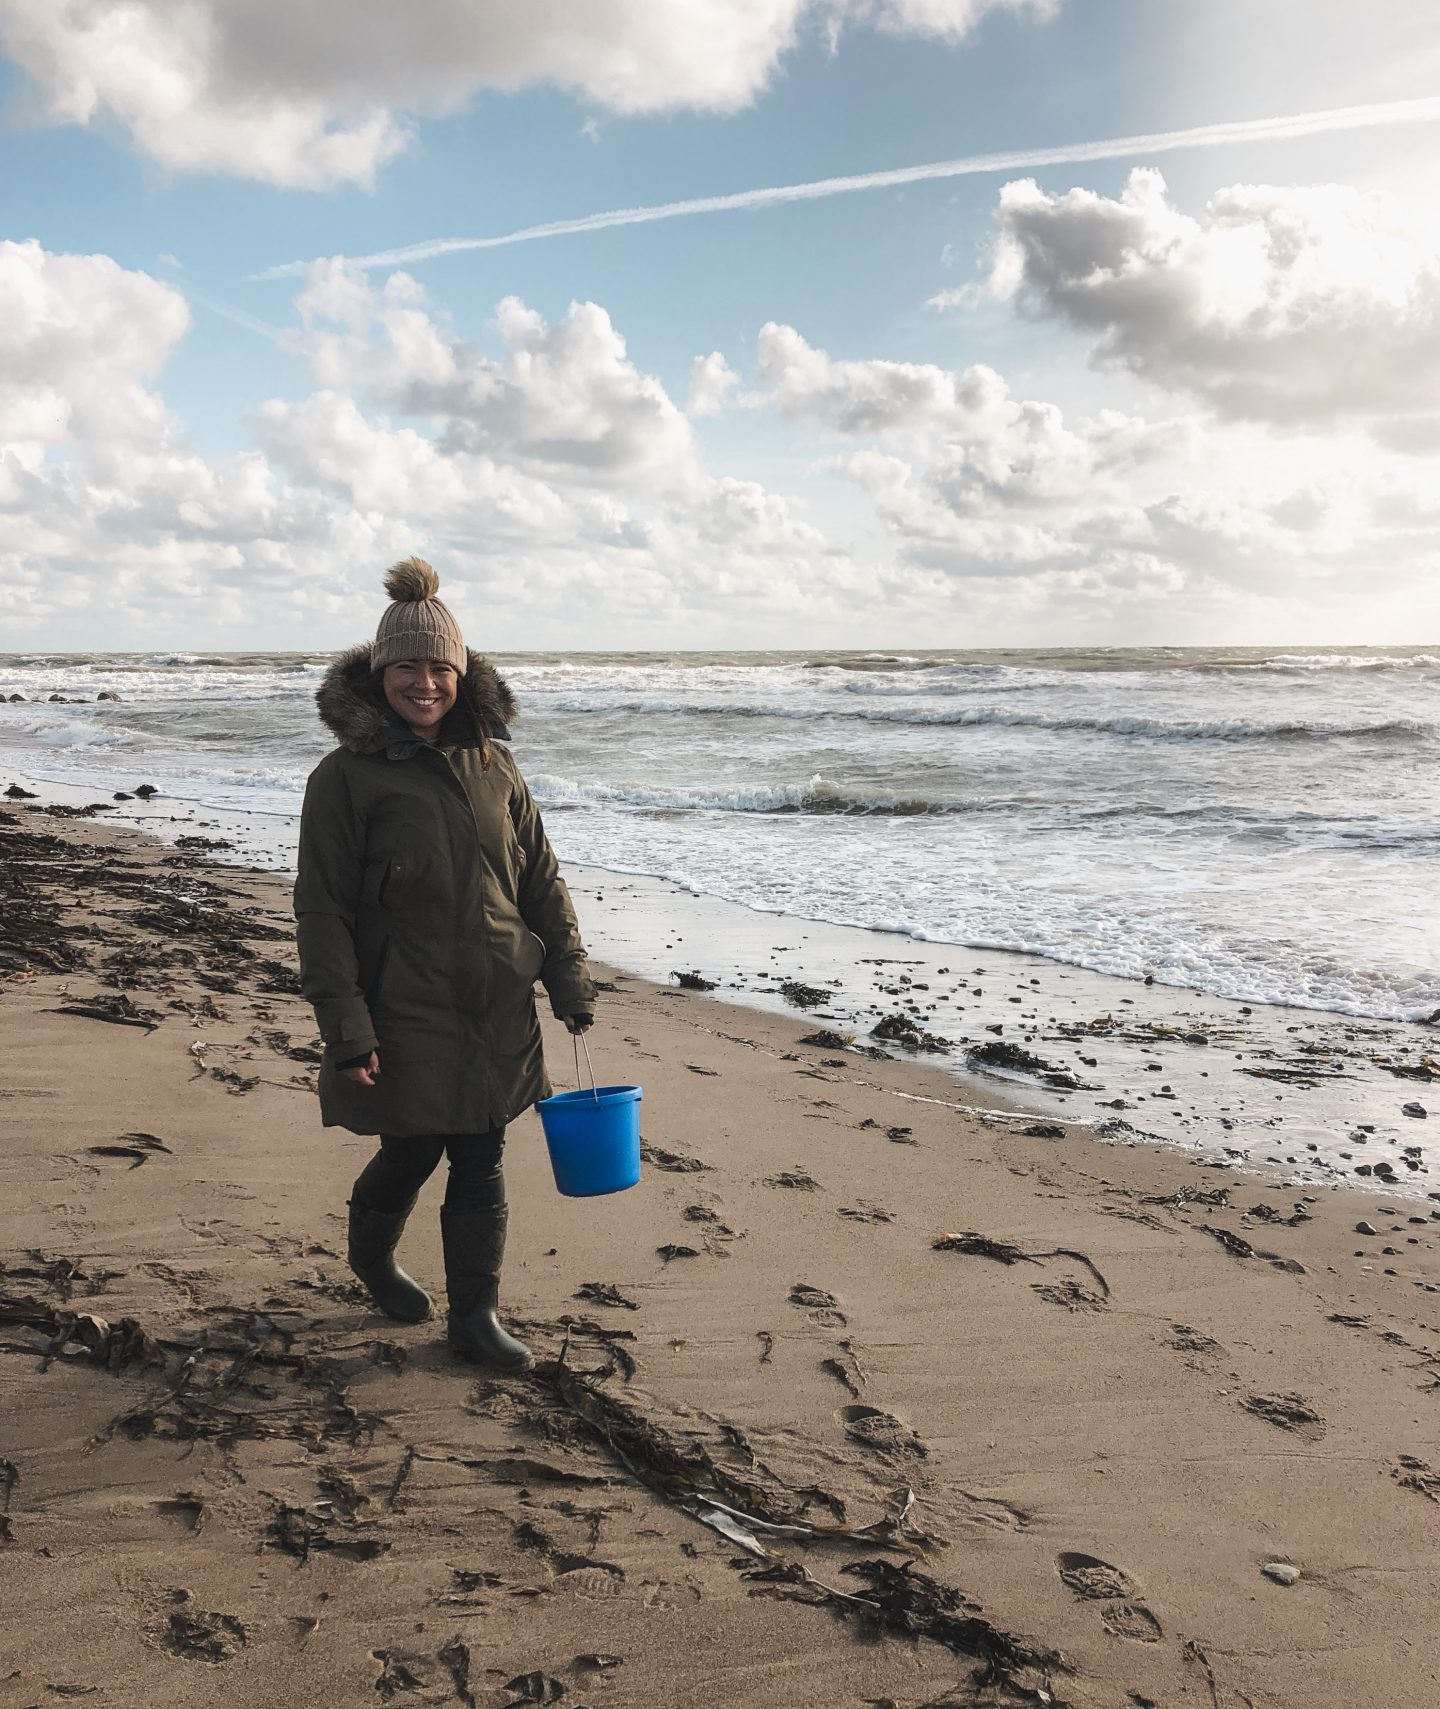 Things to do in County Down: Crawford's Rock Seaweed Co. Foraging on the beach